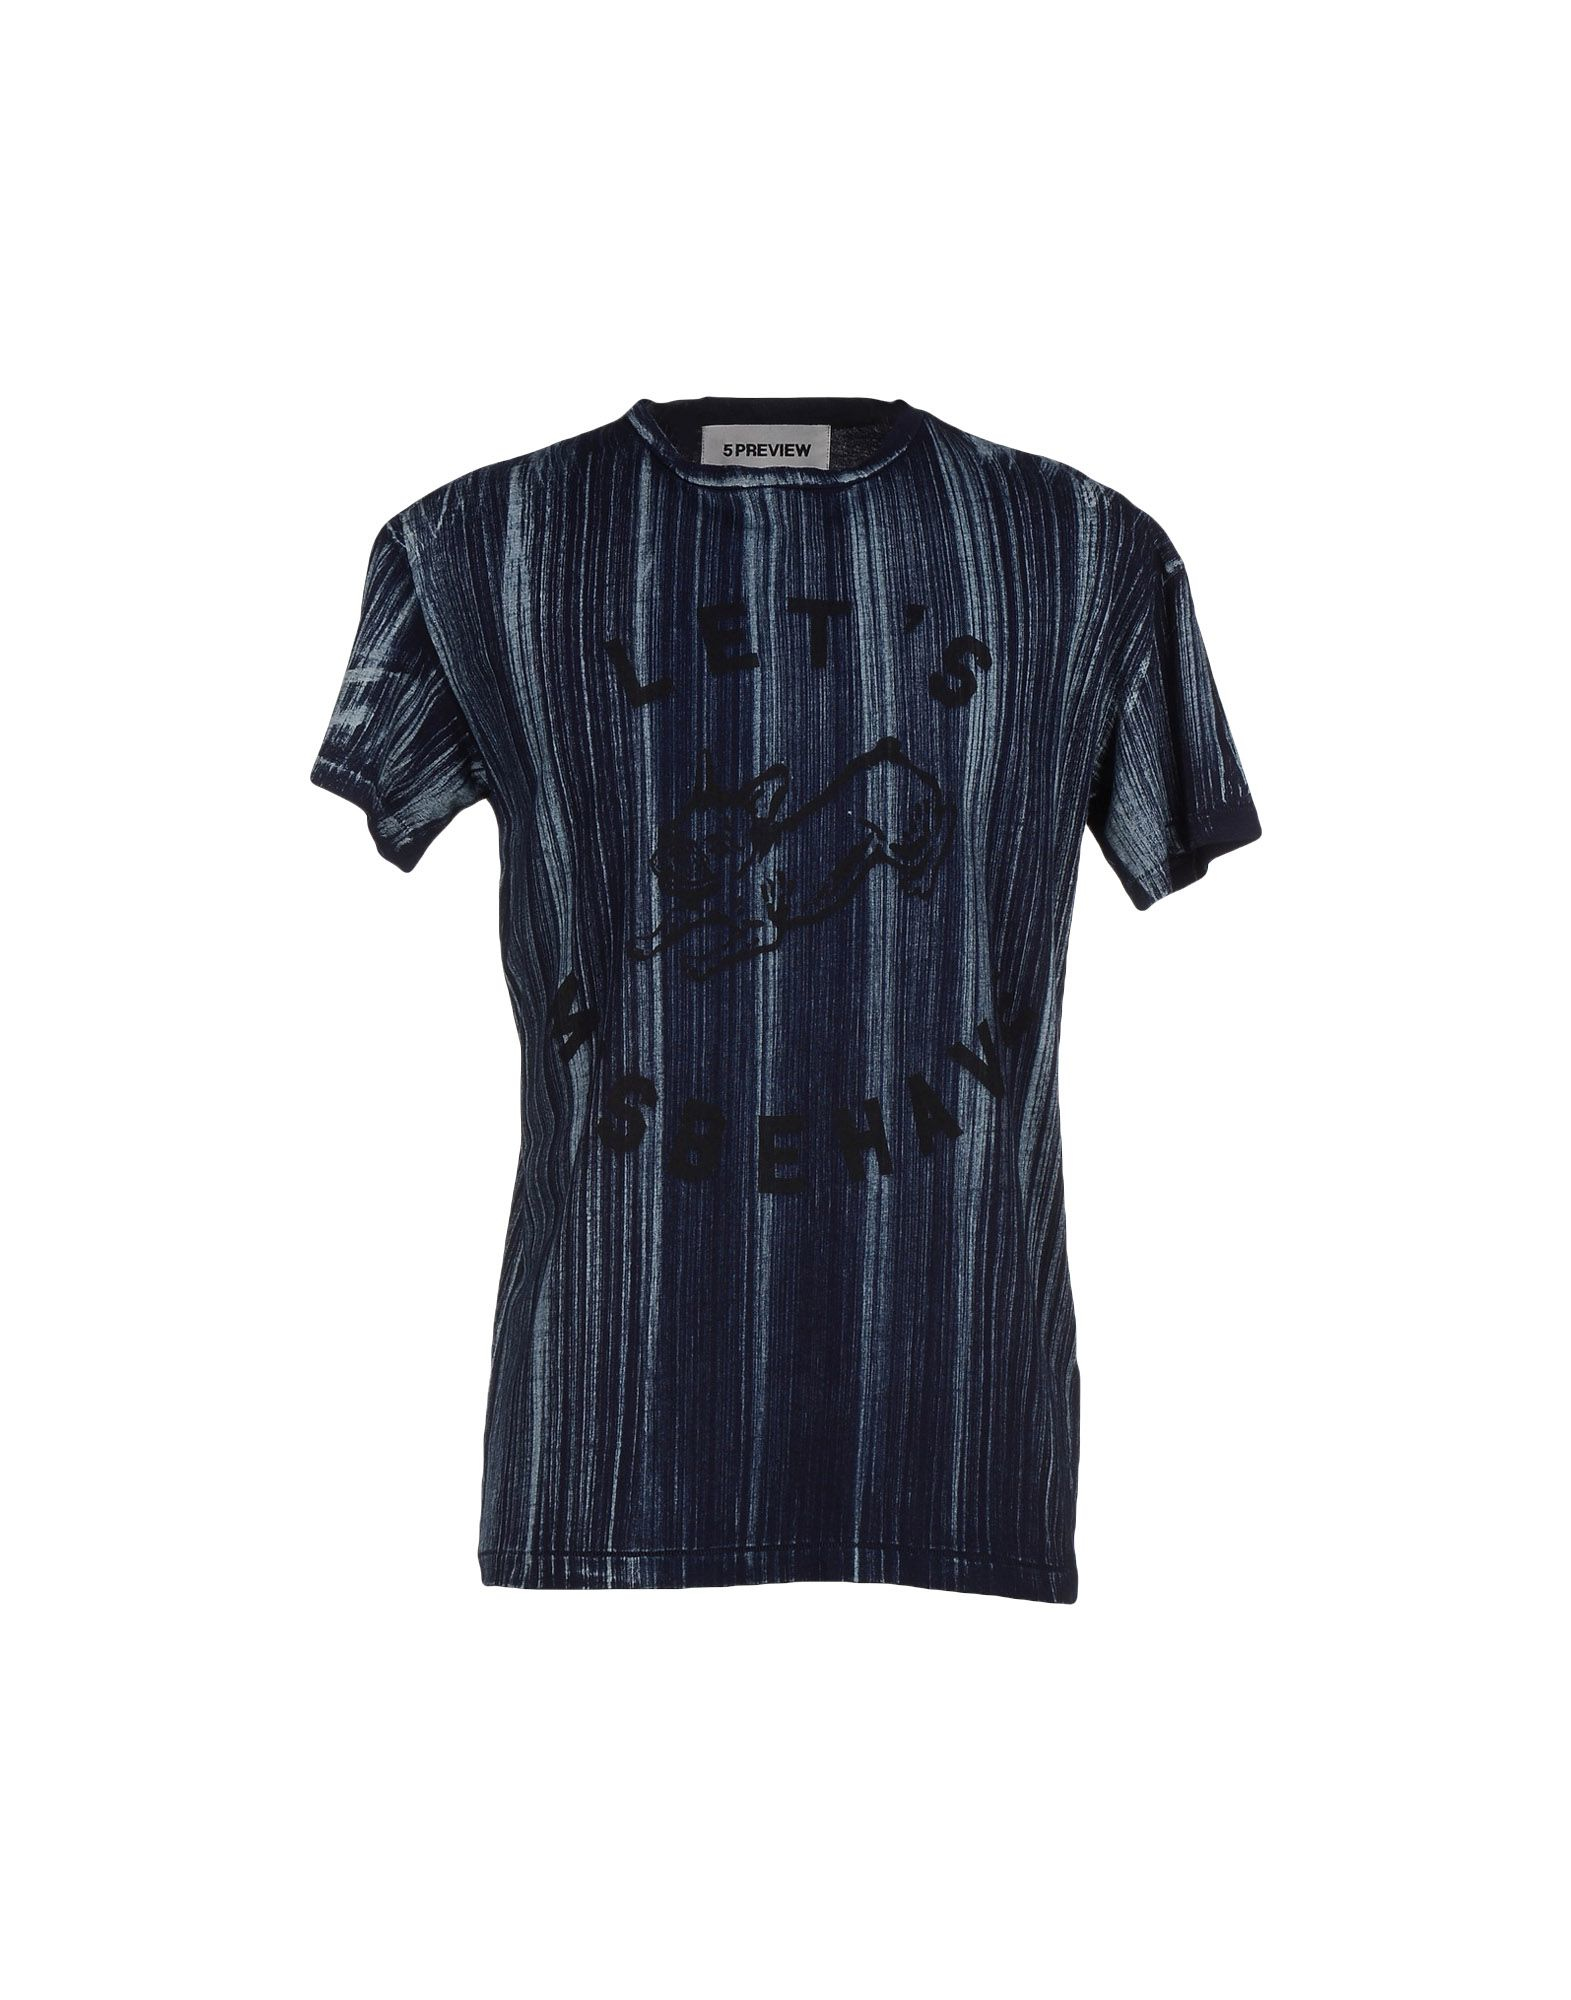 5preview t shirt in blue for men dark blue save 50 lyst for T shirt dark blue